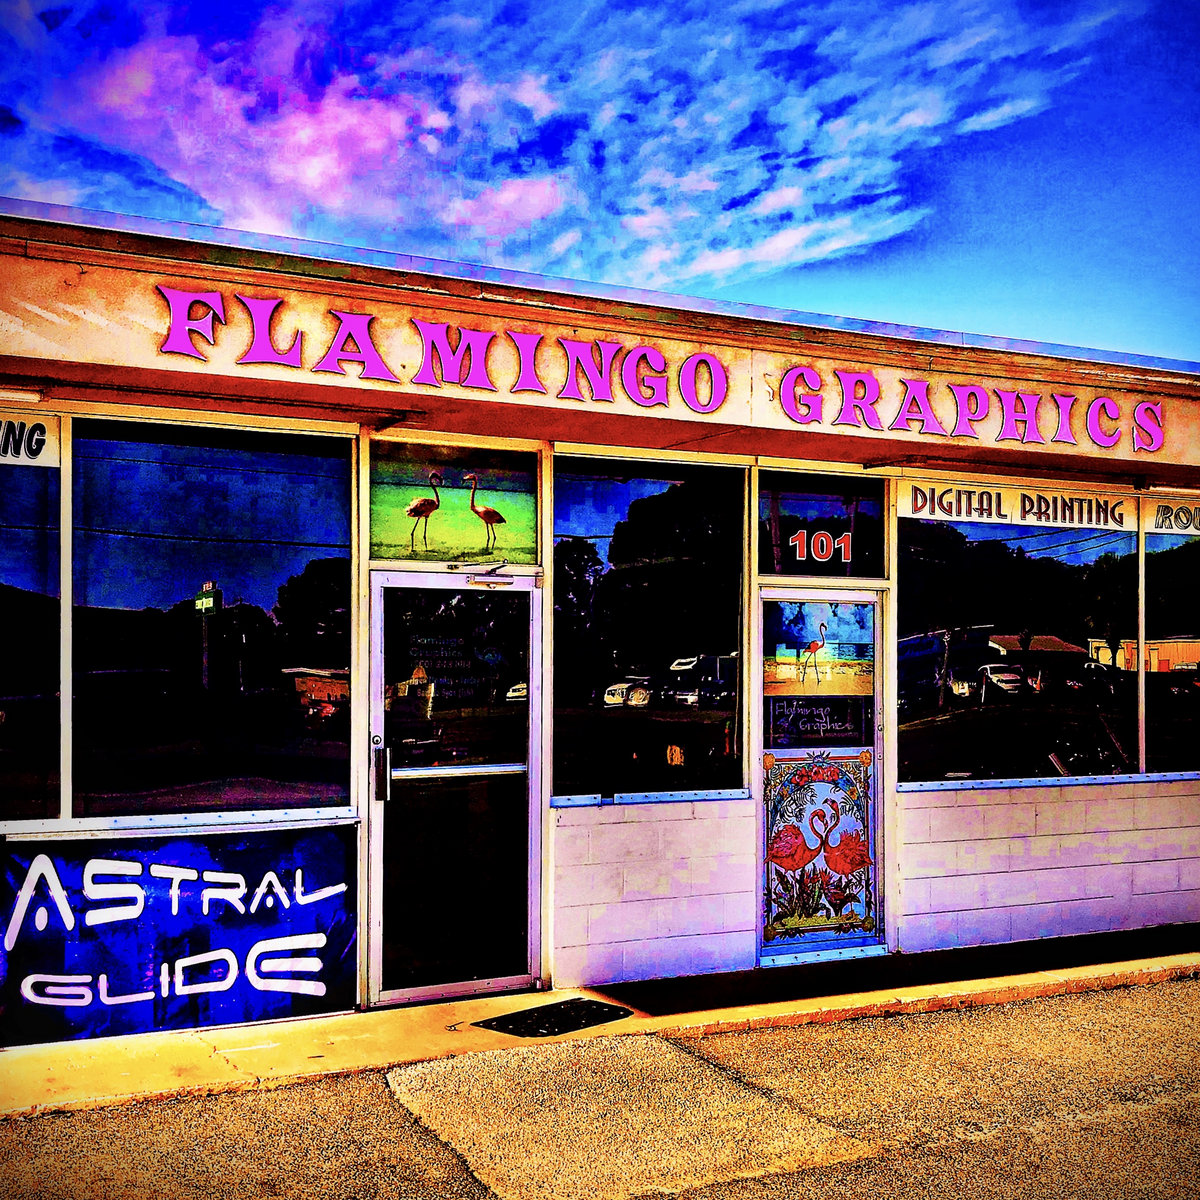 astral glide flamingo graphics